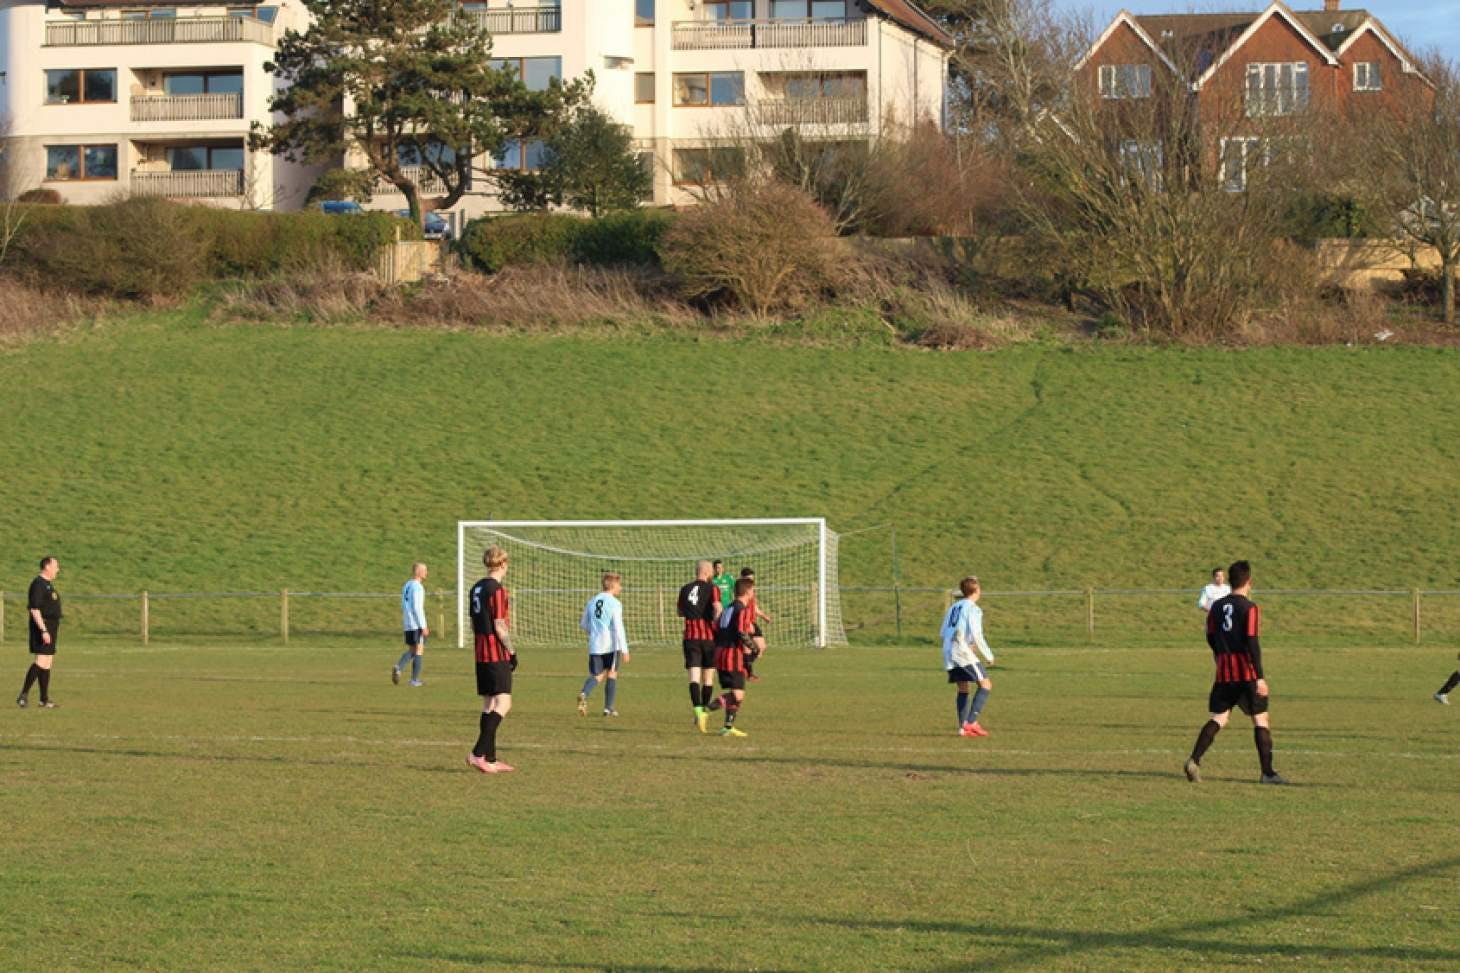 Rottingdean Football 11 a side | Grass football pitch